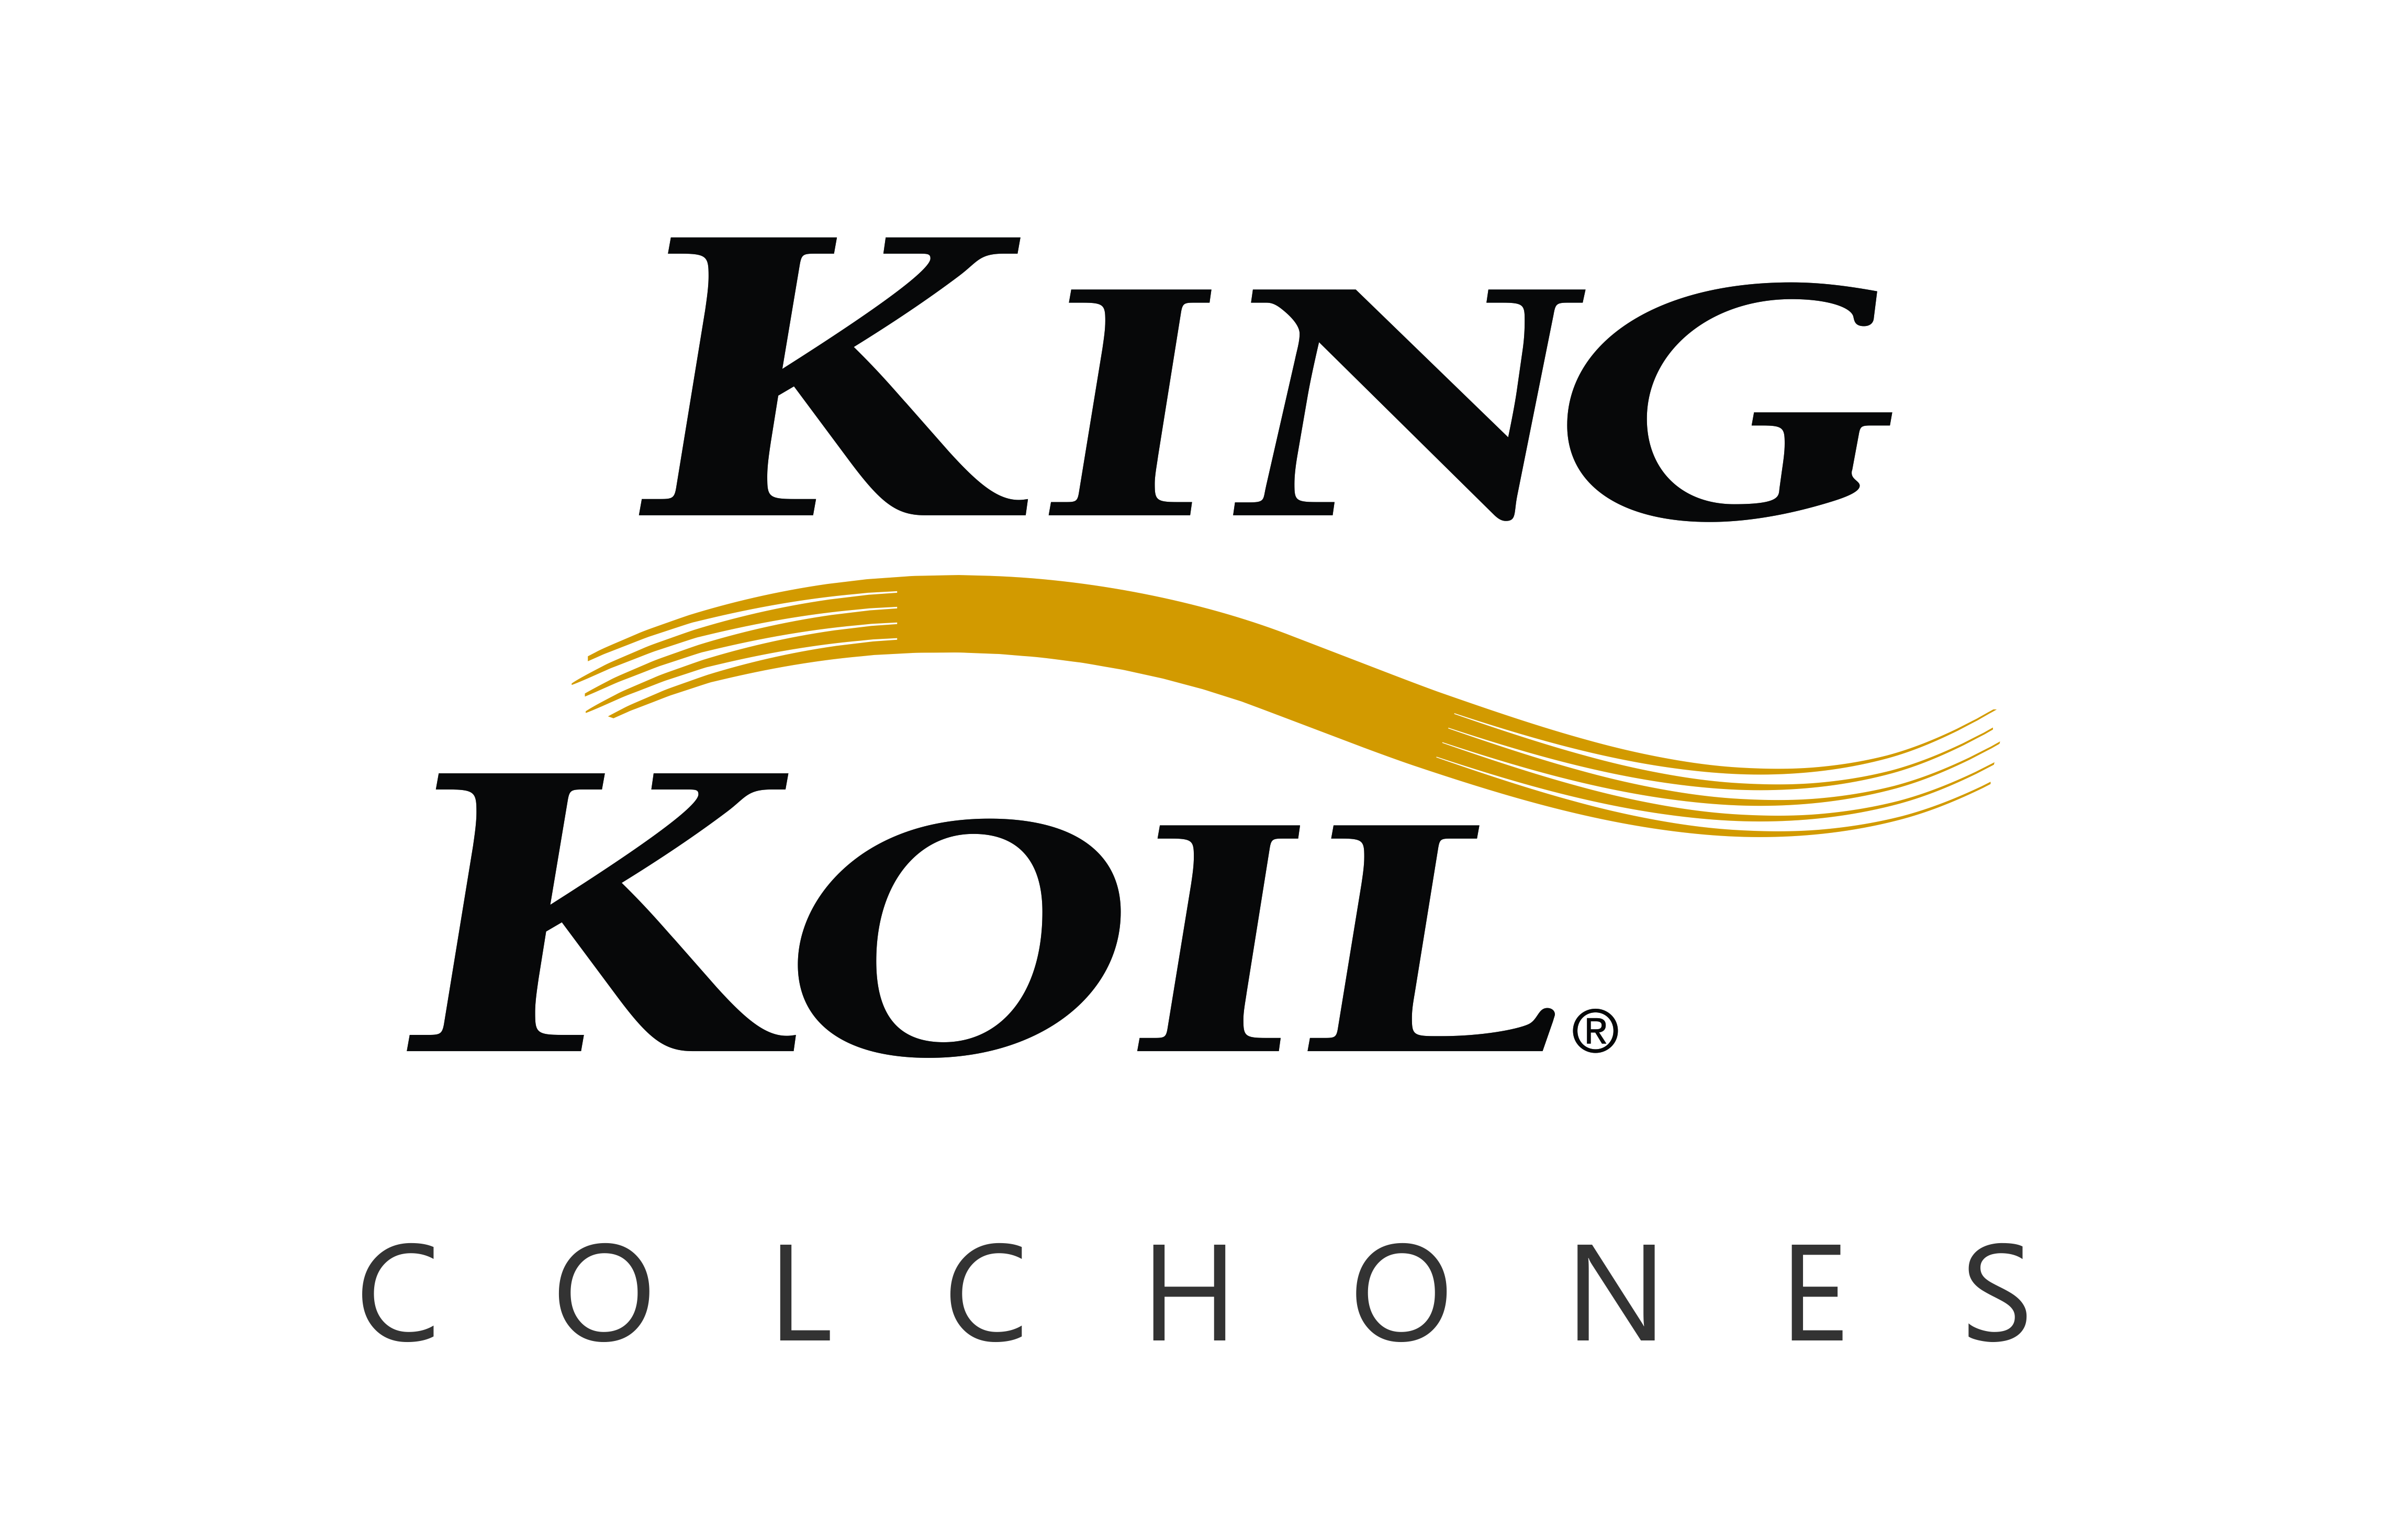 KING KOIL COLCHONES - 50%